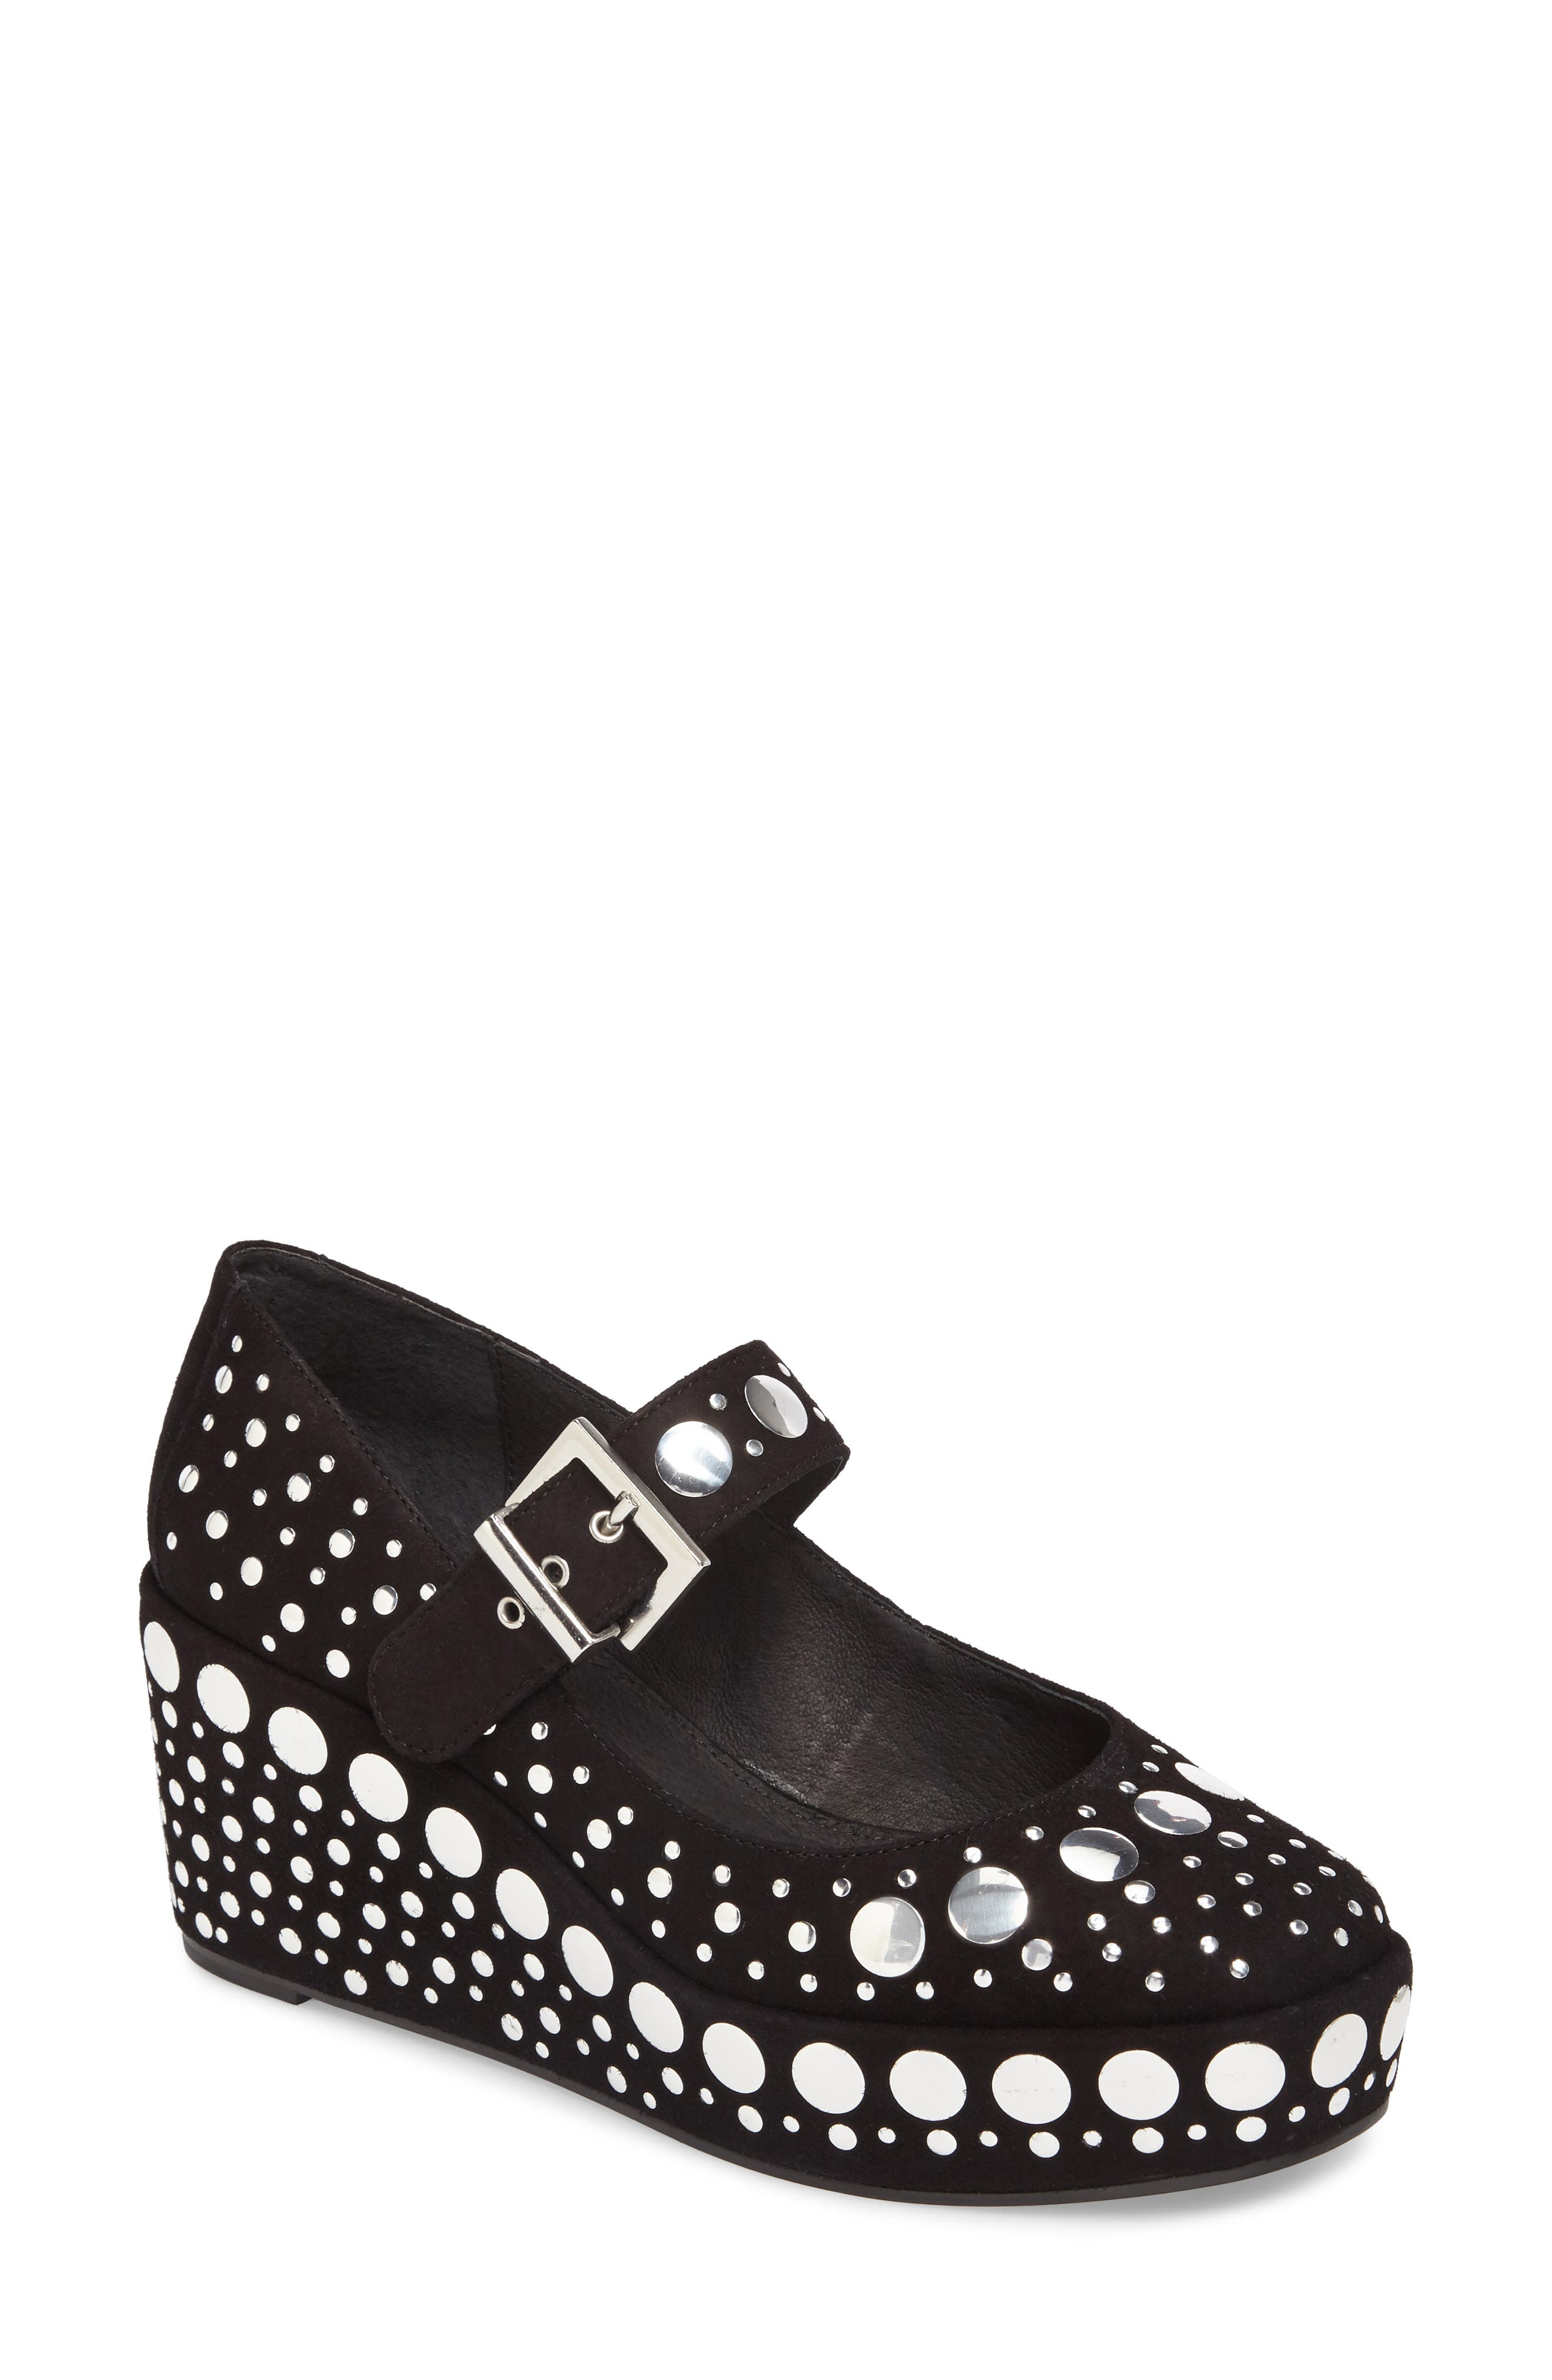 Giselle Studded Mary Jane Wedge,                             Main thumbnail 1, color,                             001